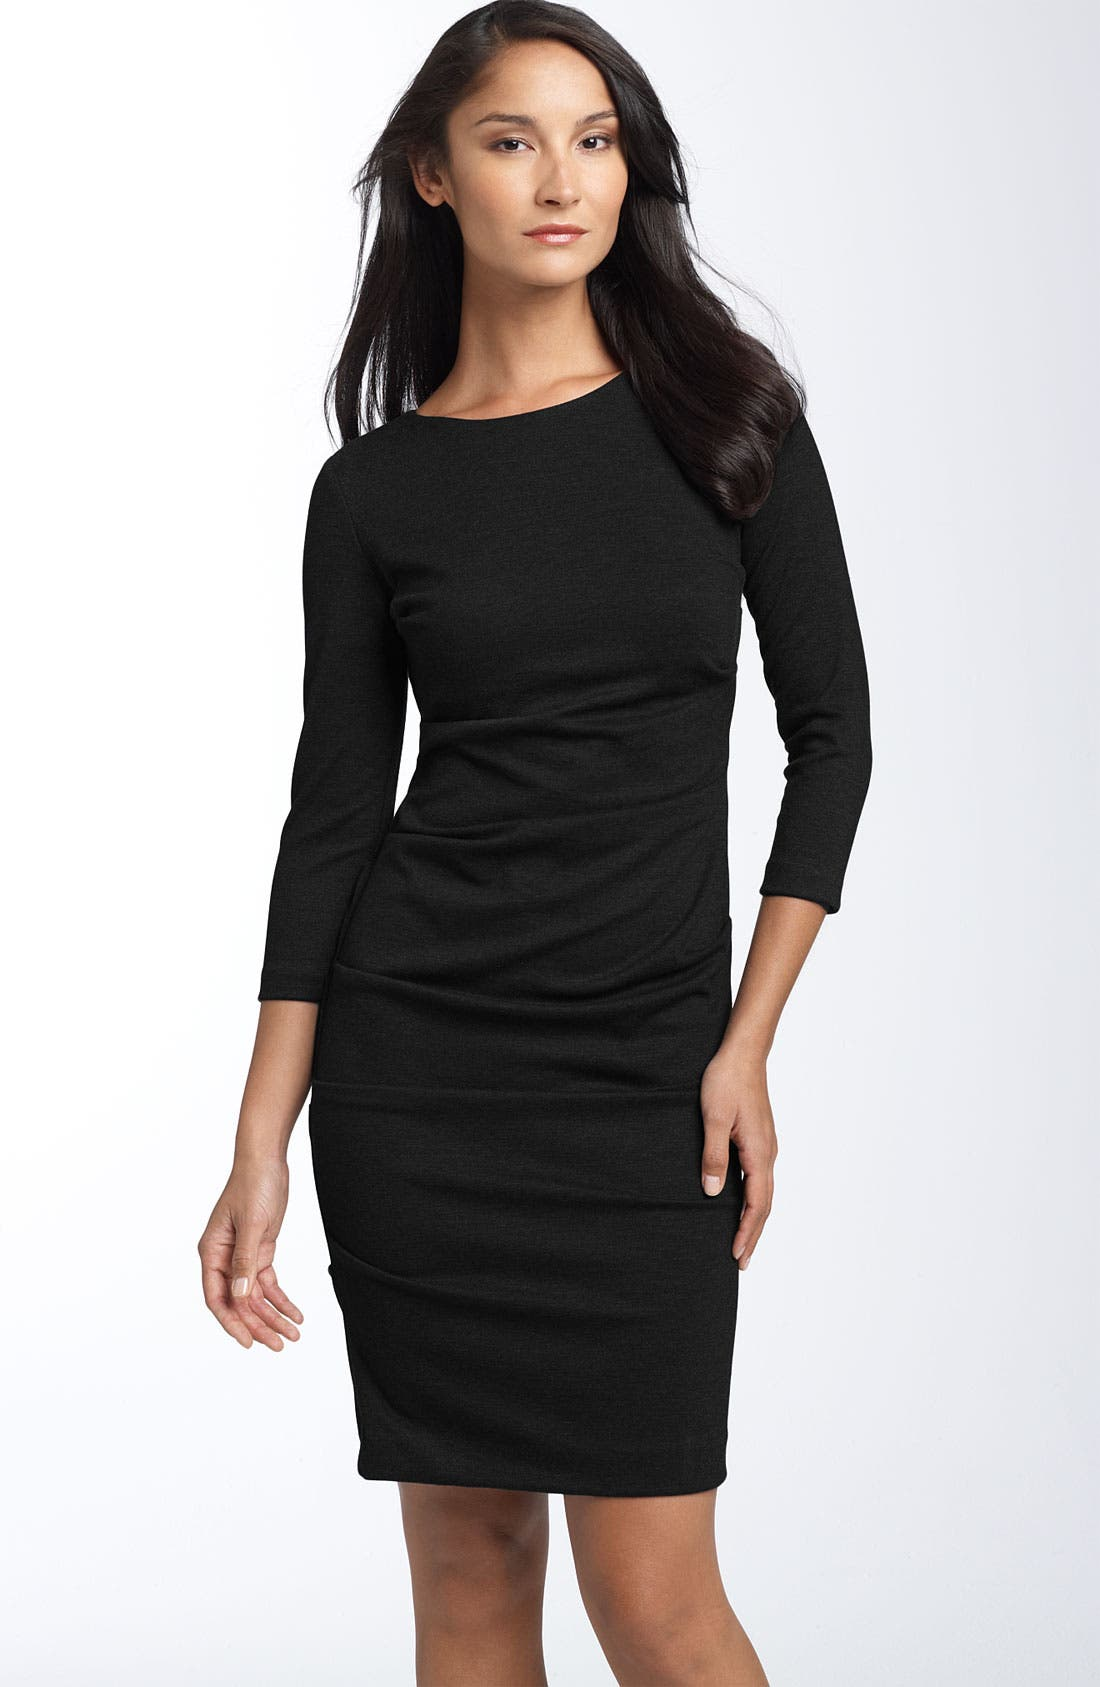 Alternate Image 1 Selected - Nicole Miller Ruched Ponte Knit Sheath Dress